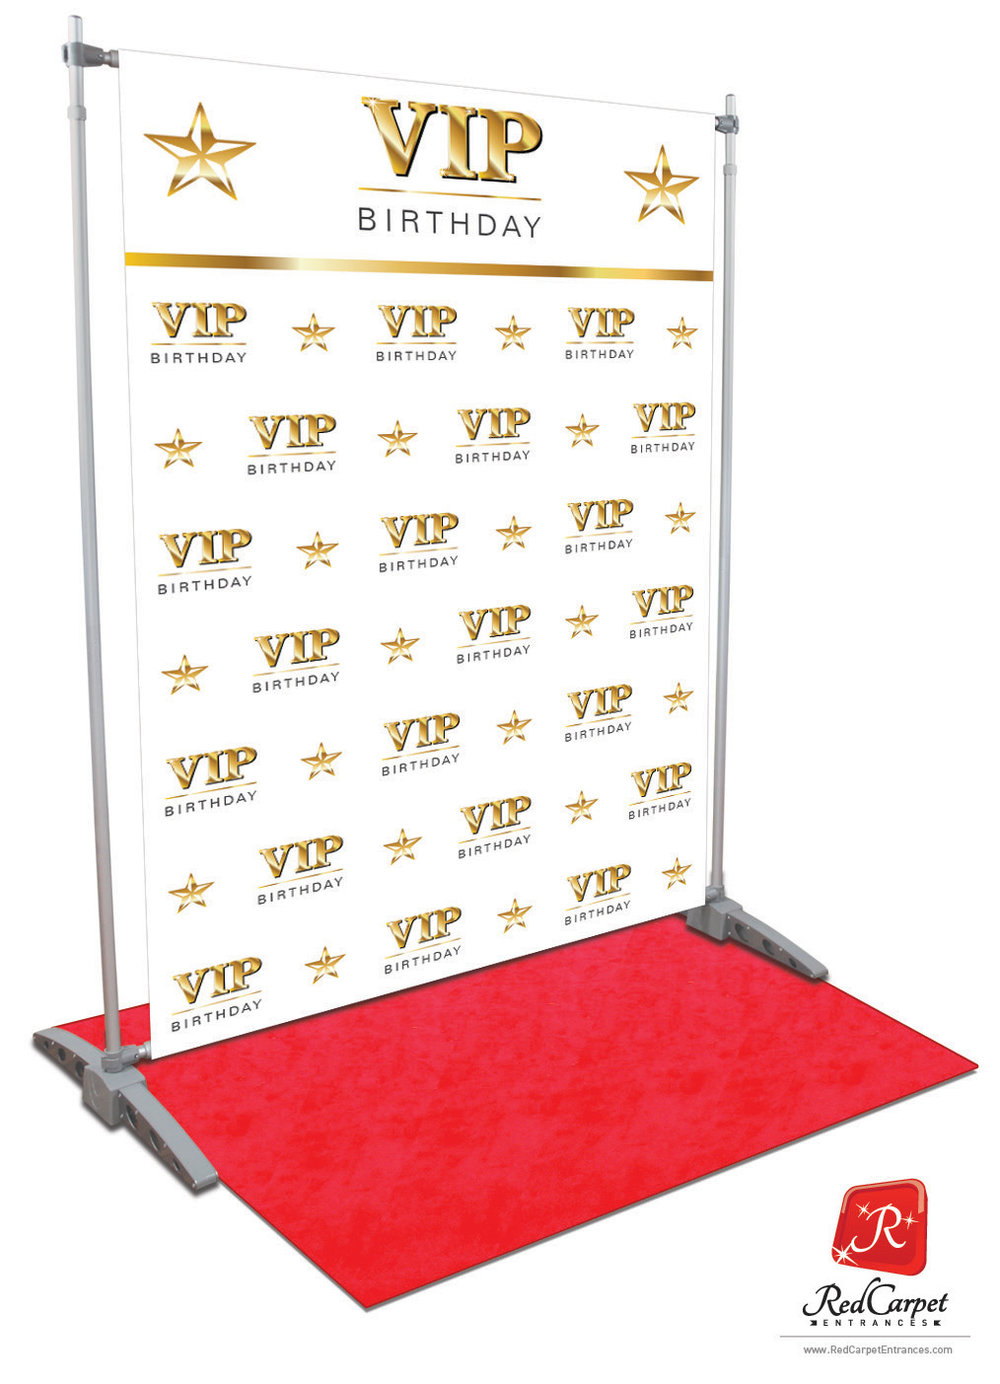 Vip Birthday Backdrop Red Carpet Kit White 5x8 Red